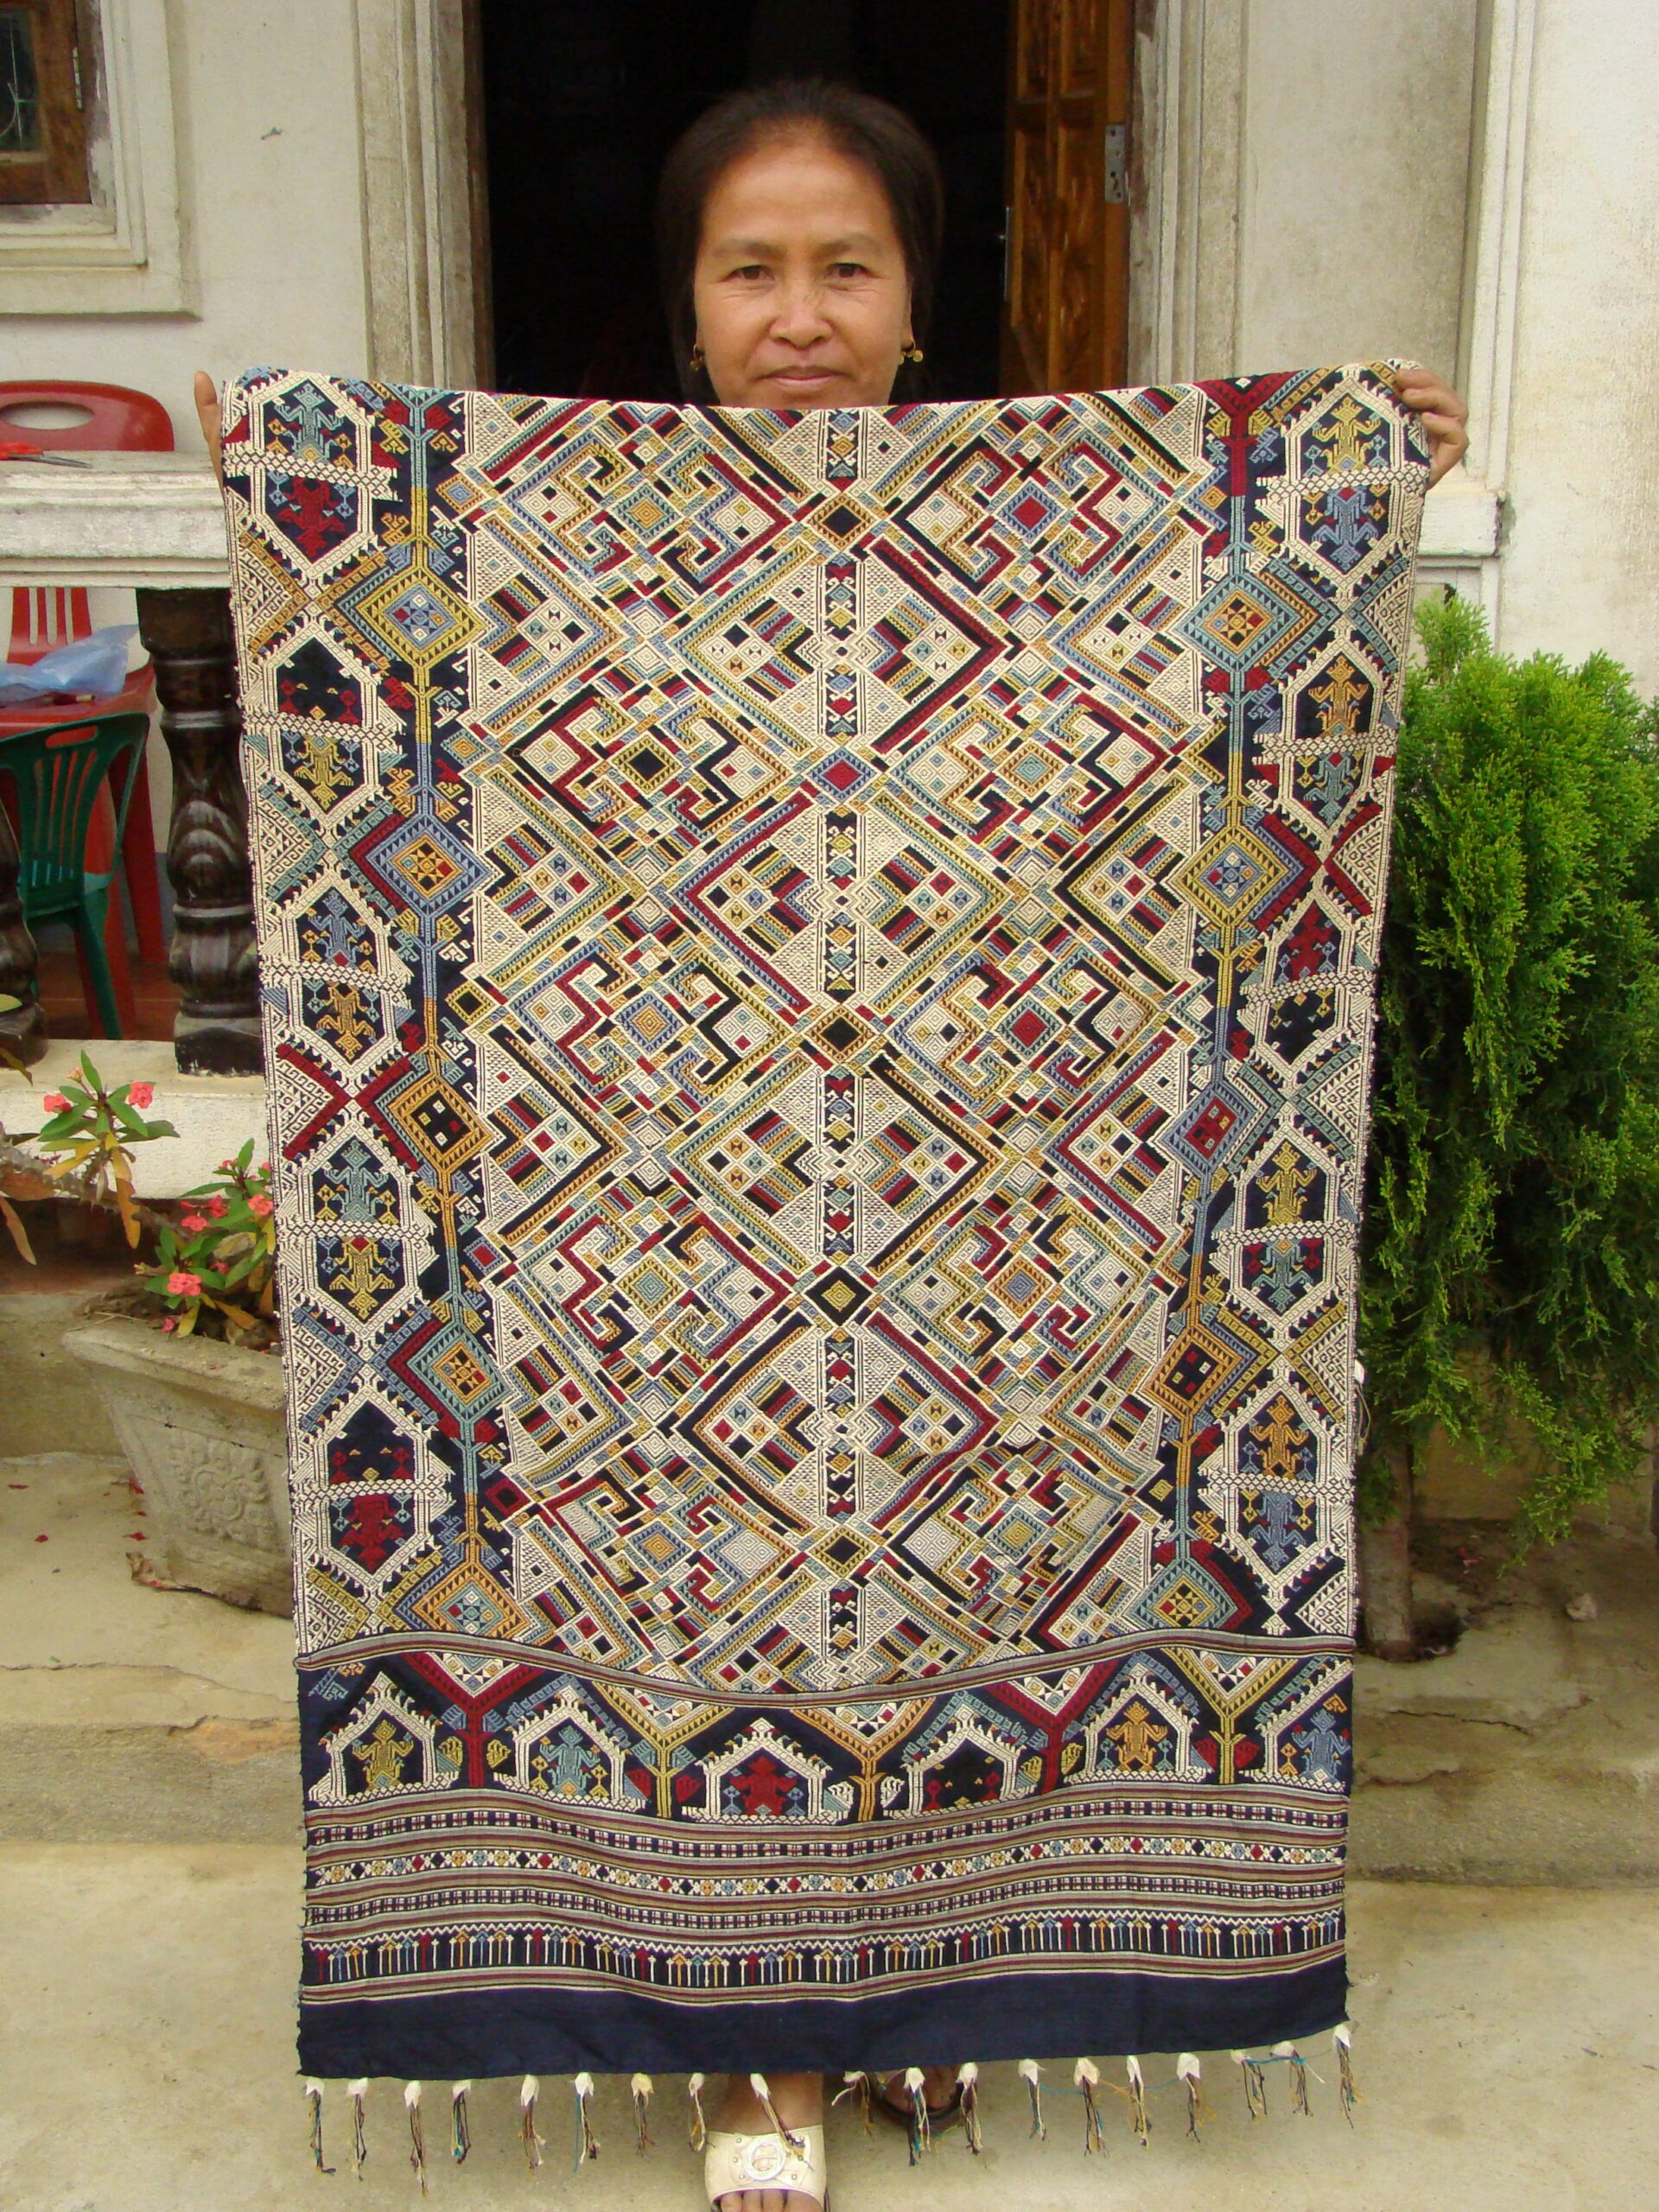 Lun displays one of her masterpieces, a ceremonial wedding blanket.